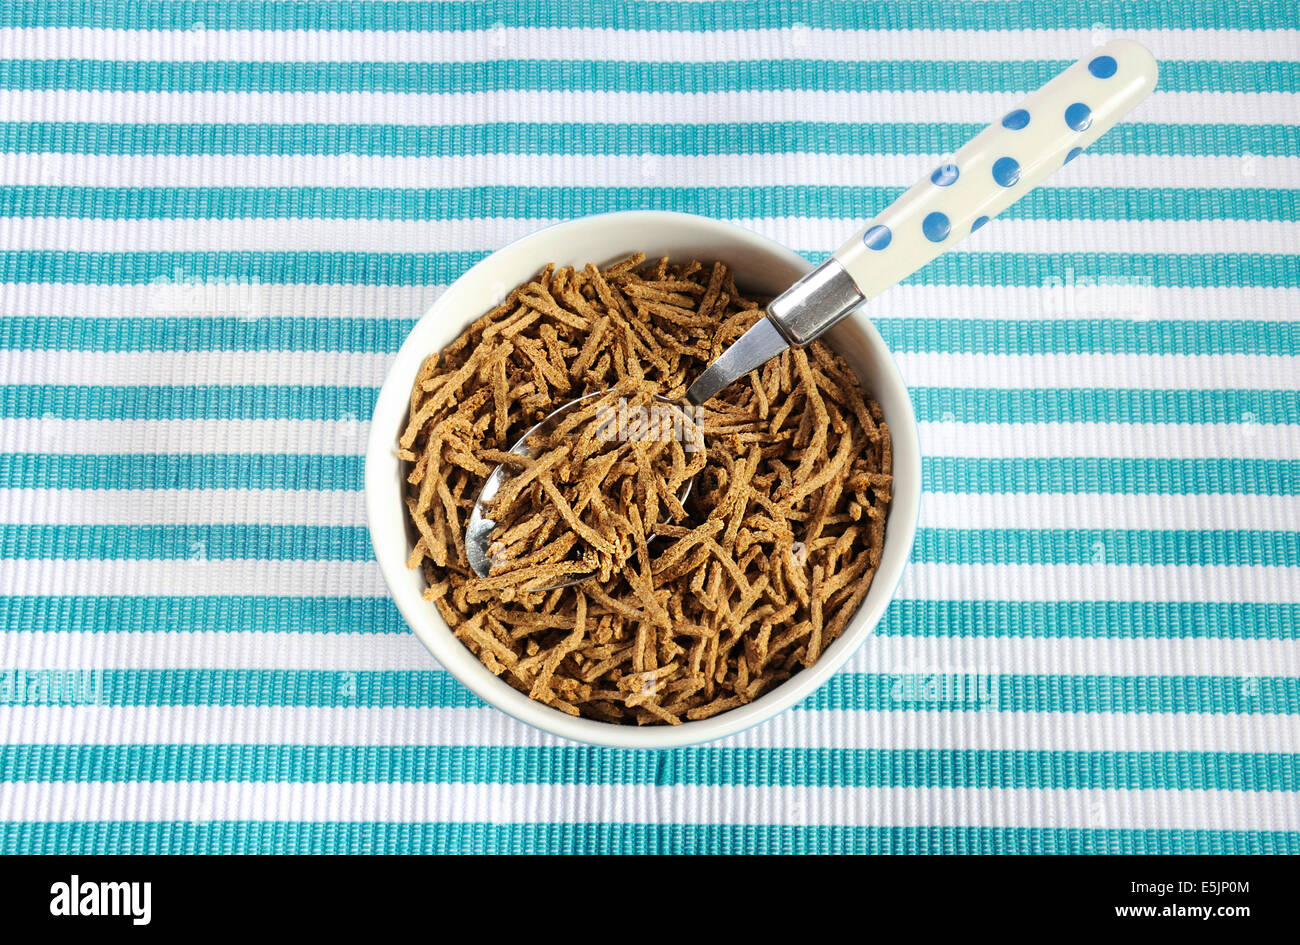 Healthy diet high dietary fiber breakfast with bowl of bran cereal on aqua blue and white place mat. - Stock Image